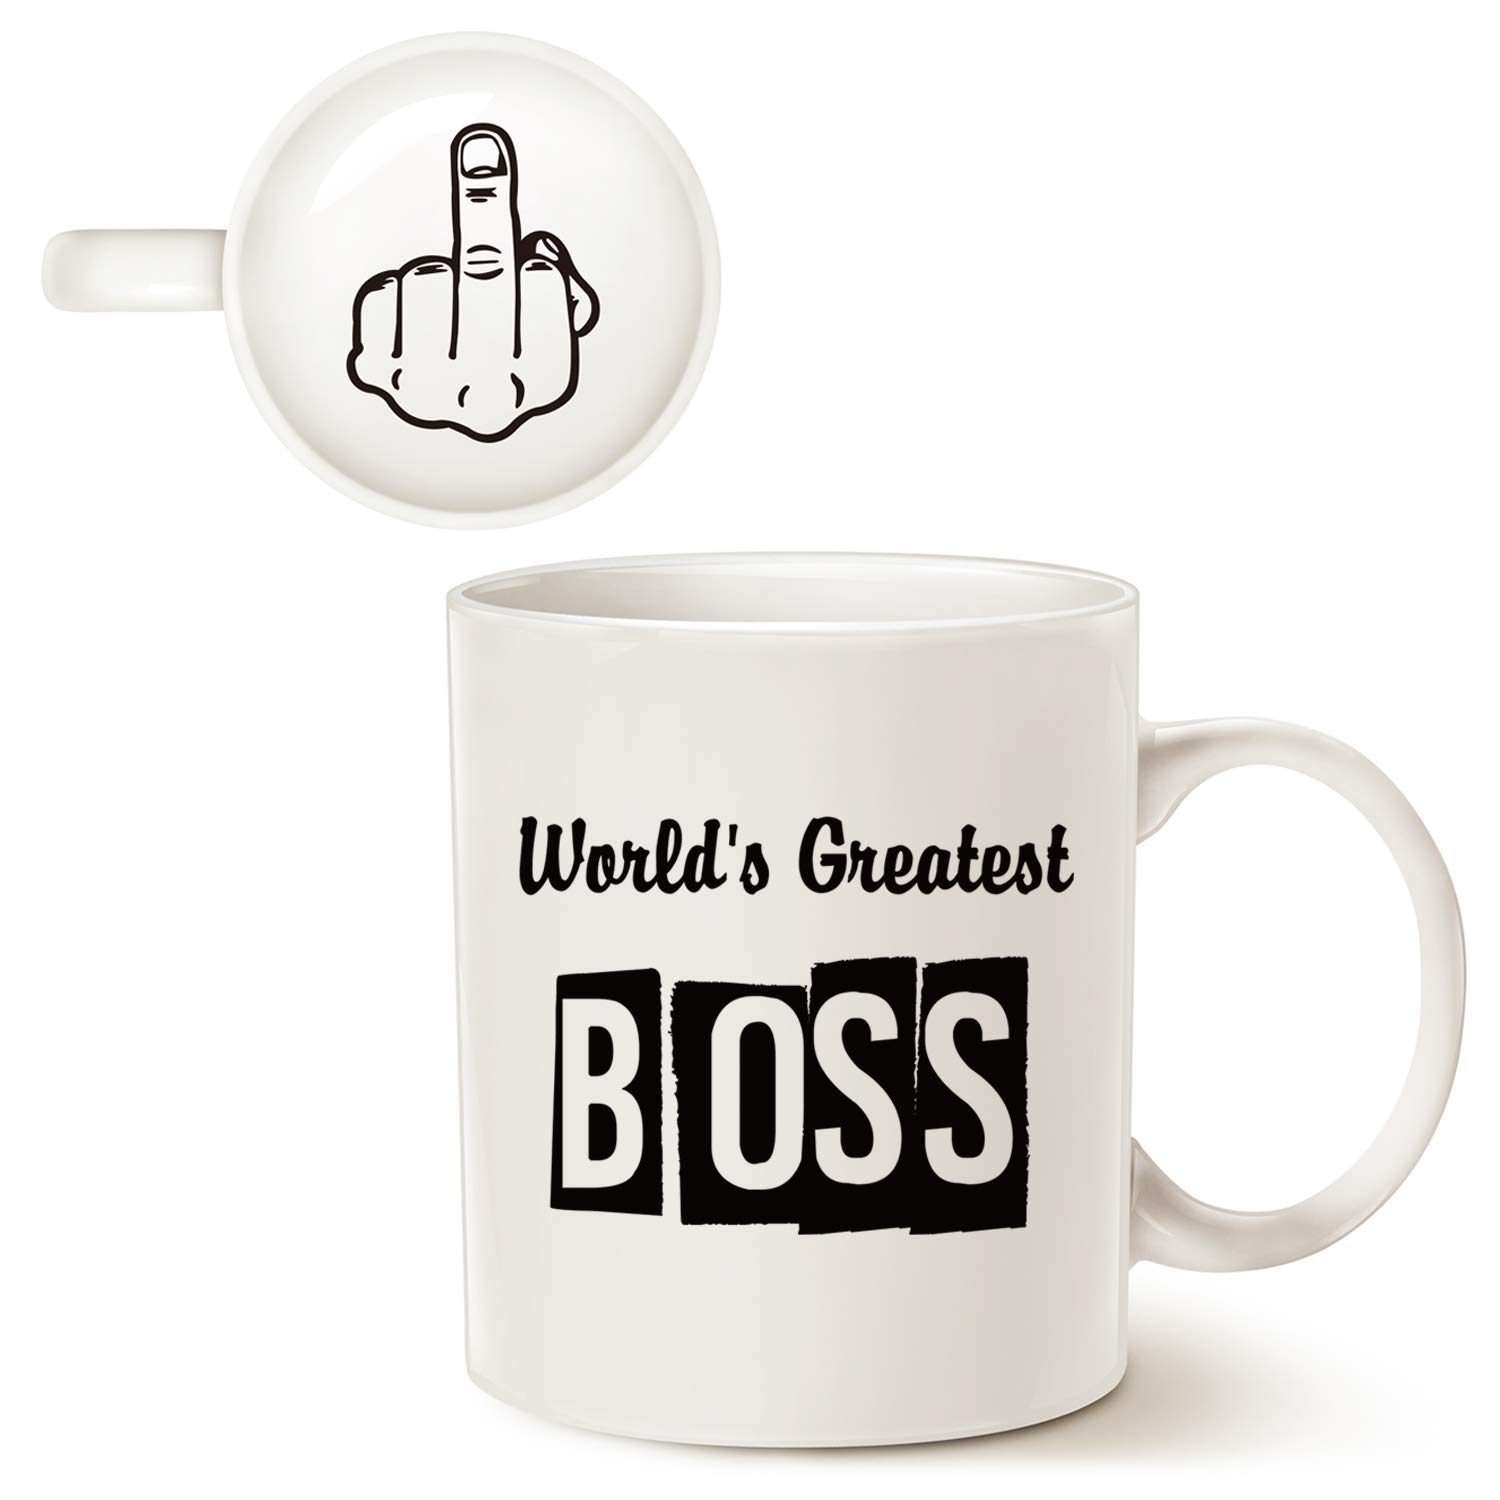 MAUAG Funny Bosses Day Gifts Best Boss Coffee Mug Christmas Gifts, World's Greatest Boss Cup White, Best Office idea for Manager, 11 Oz